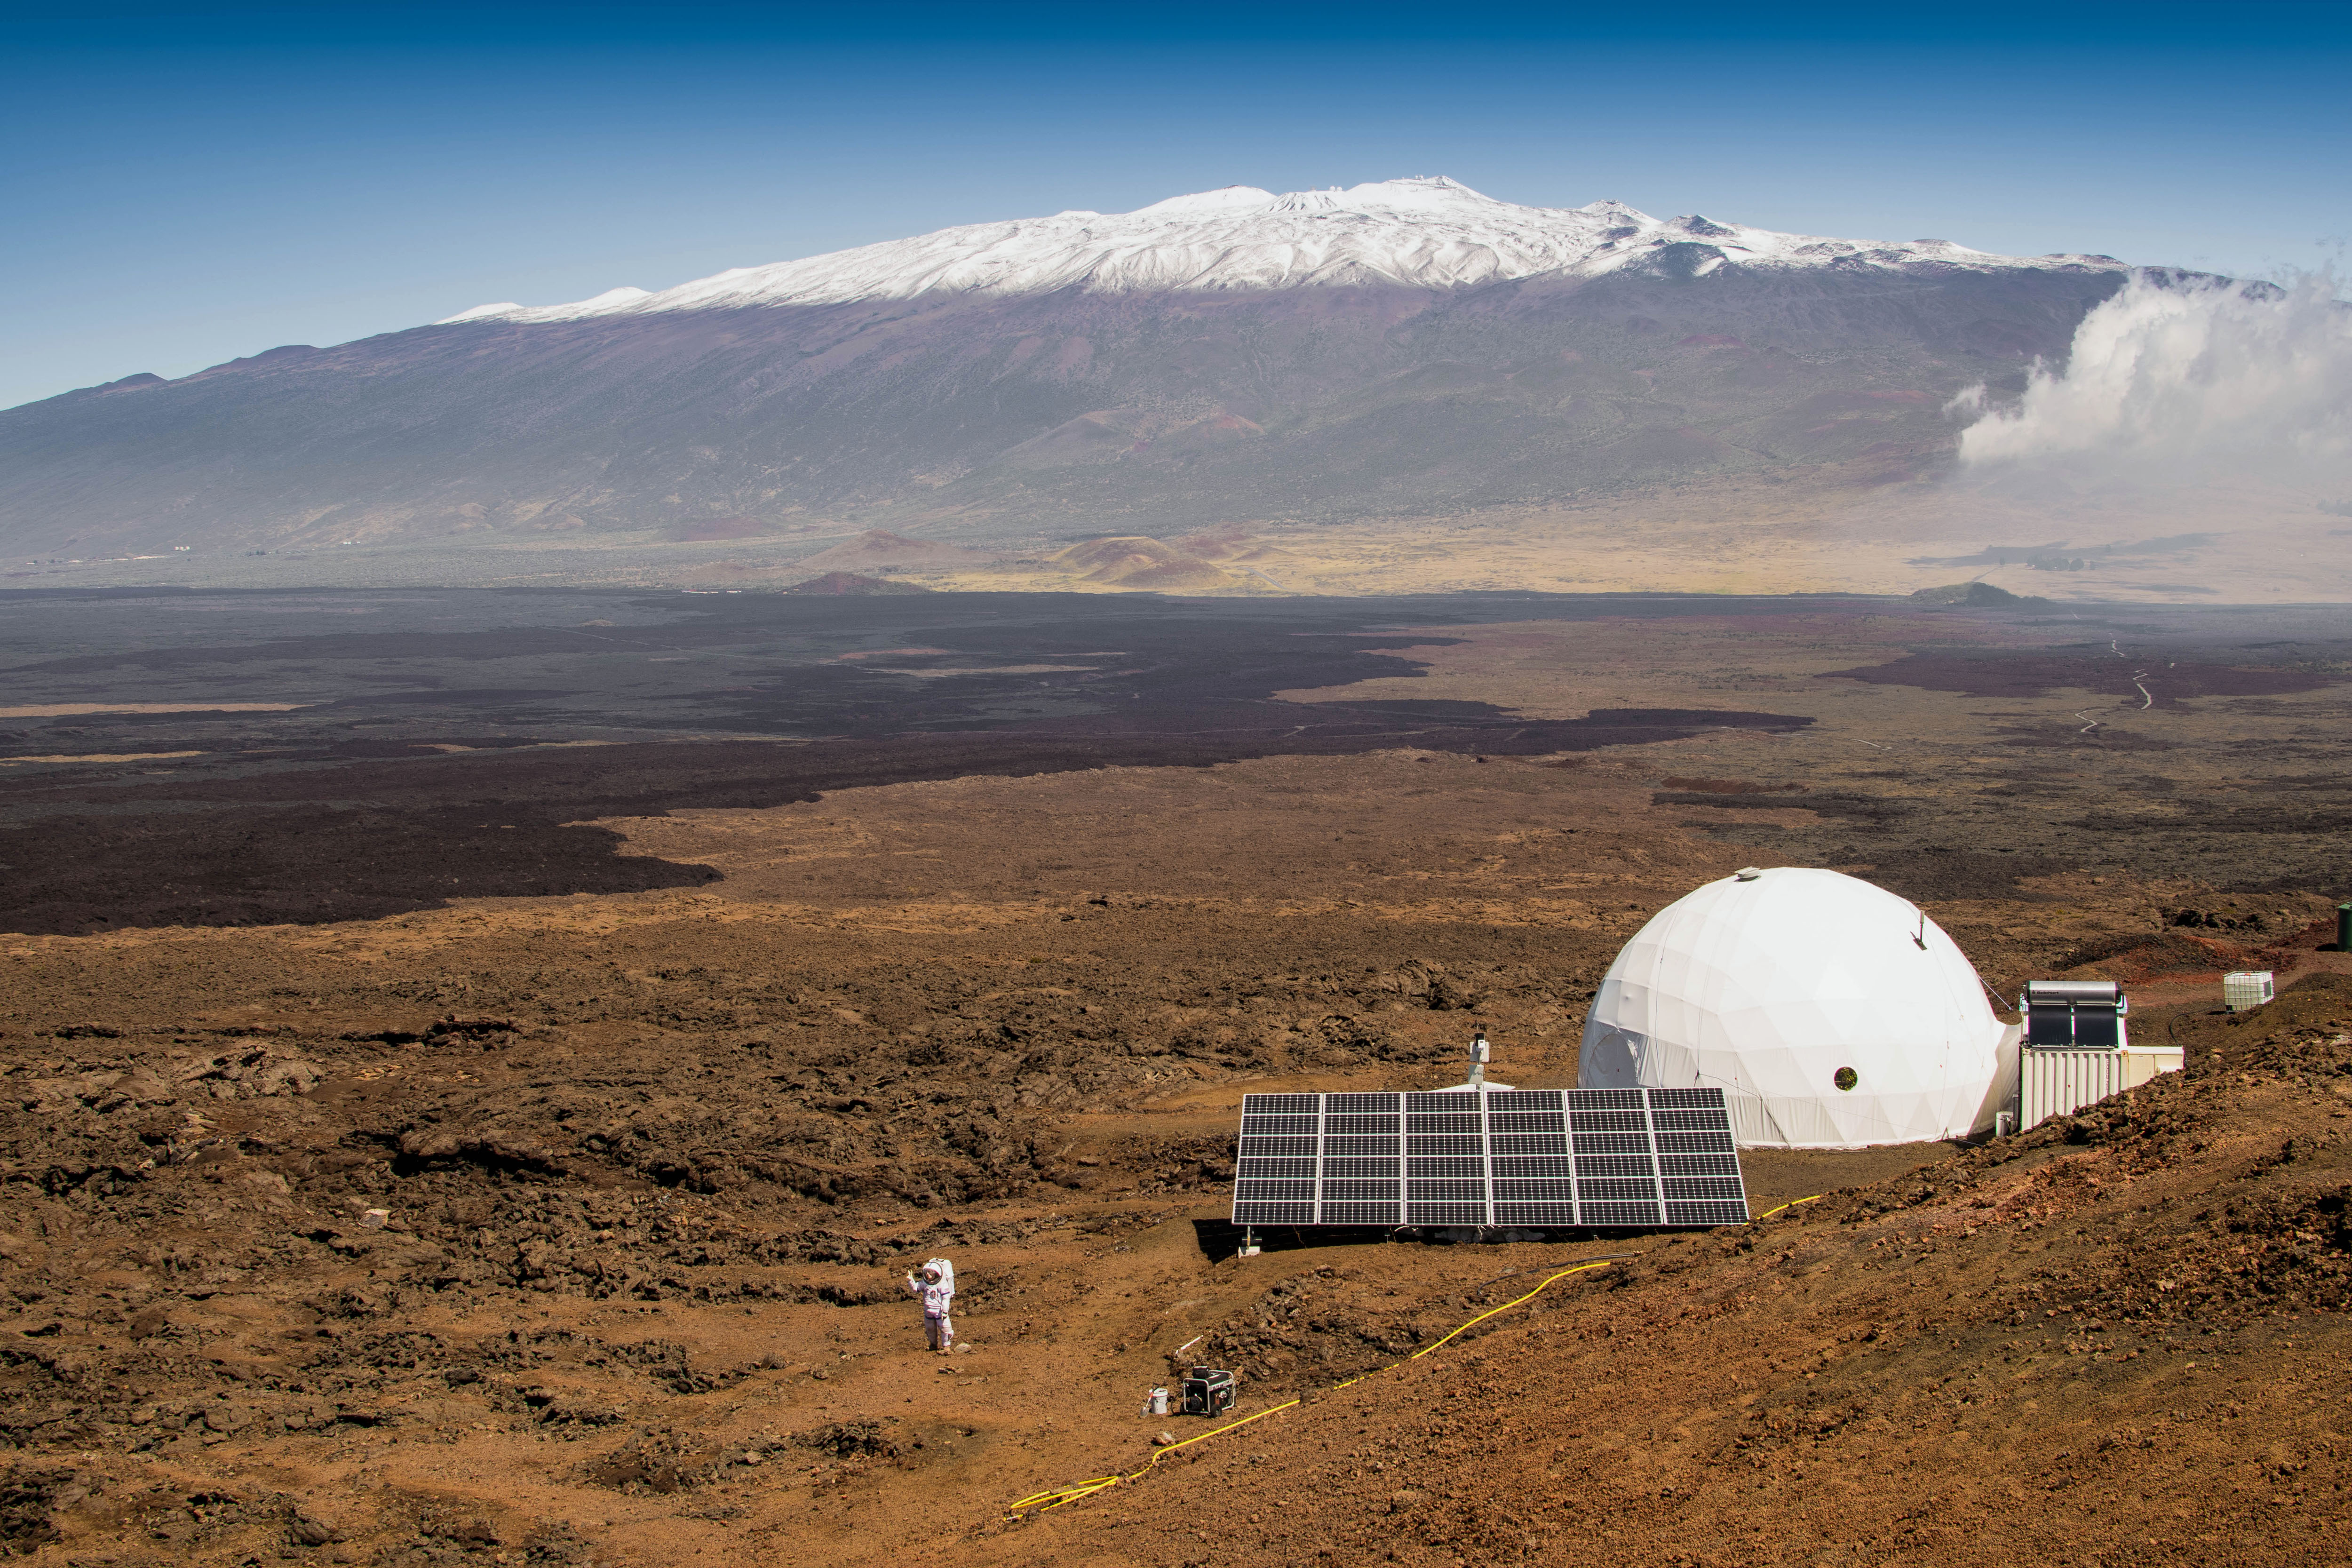 The dome where six scientists lived an isolated existence to simulate life on a mission to Mars, on the bleak slopes of dormant volcano Mauna Loa near Hilo on the Big Island of Hawaii.